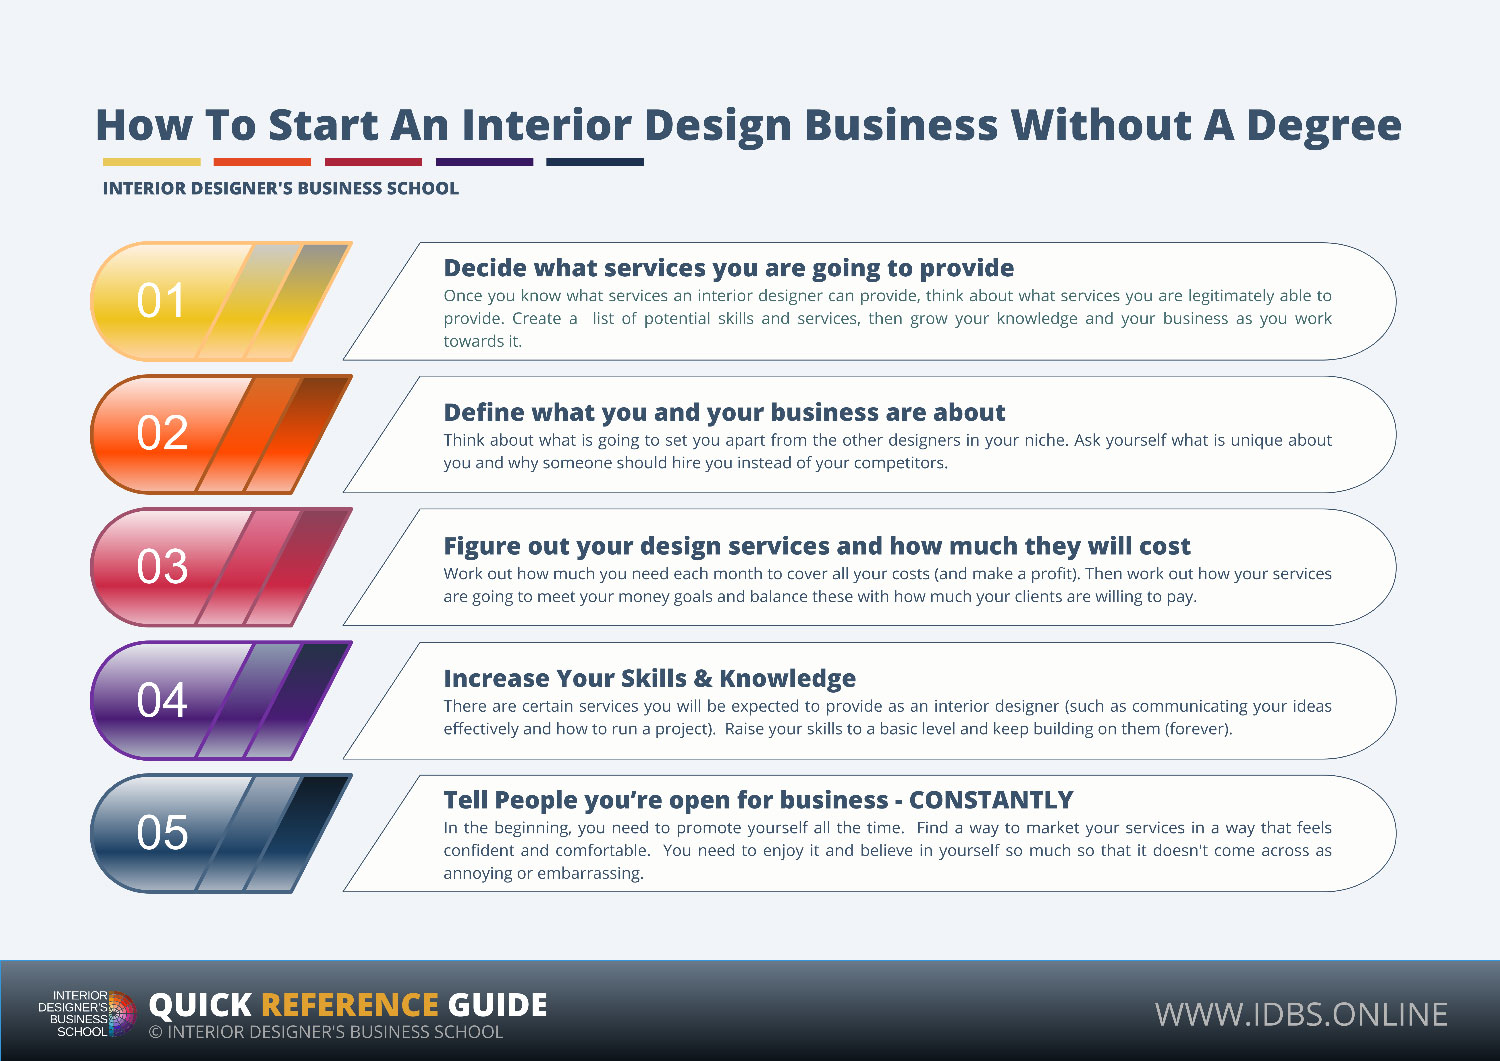 How To Start An Interior Design Business Without A Degree